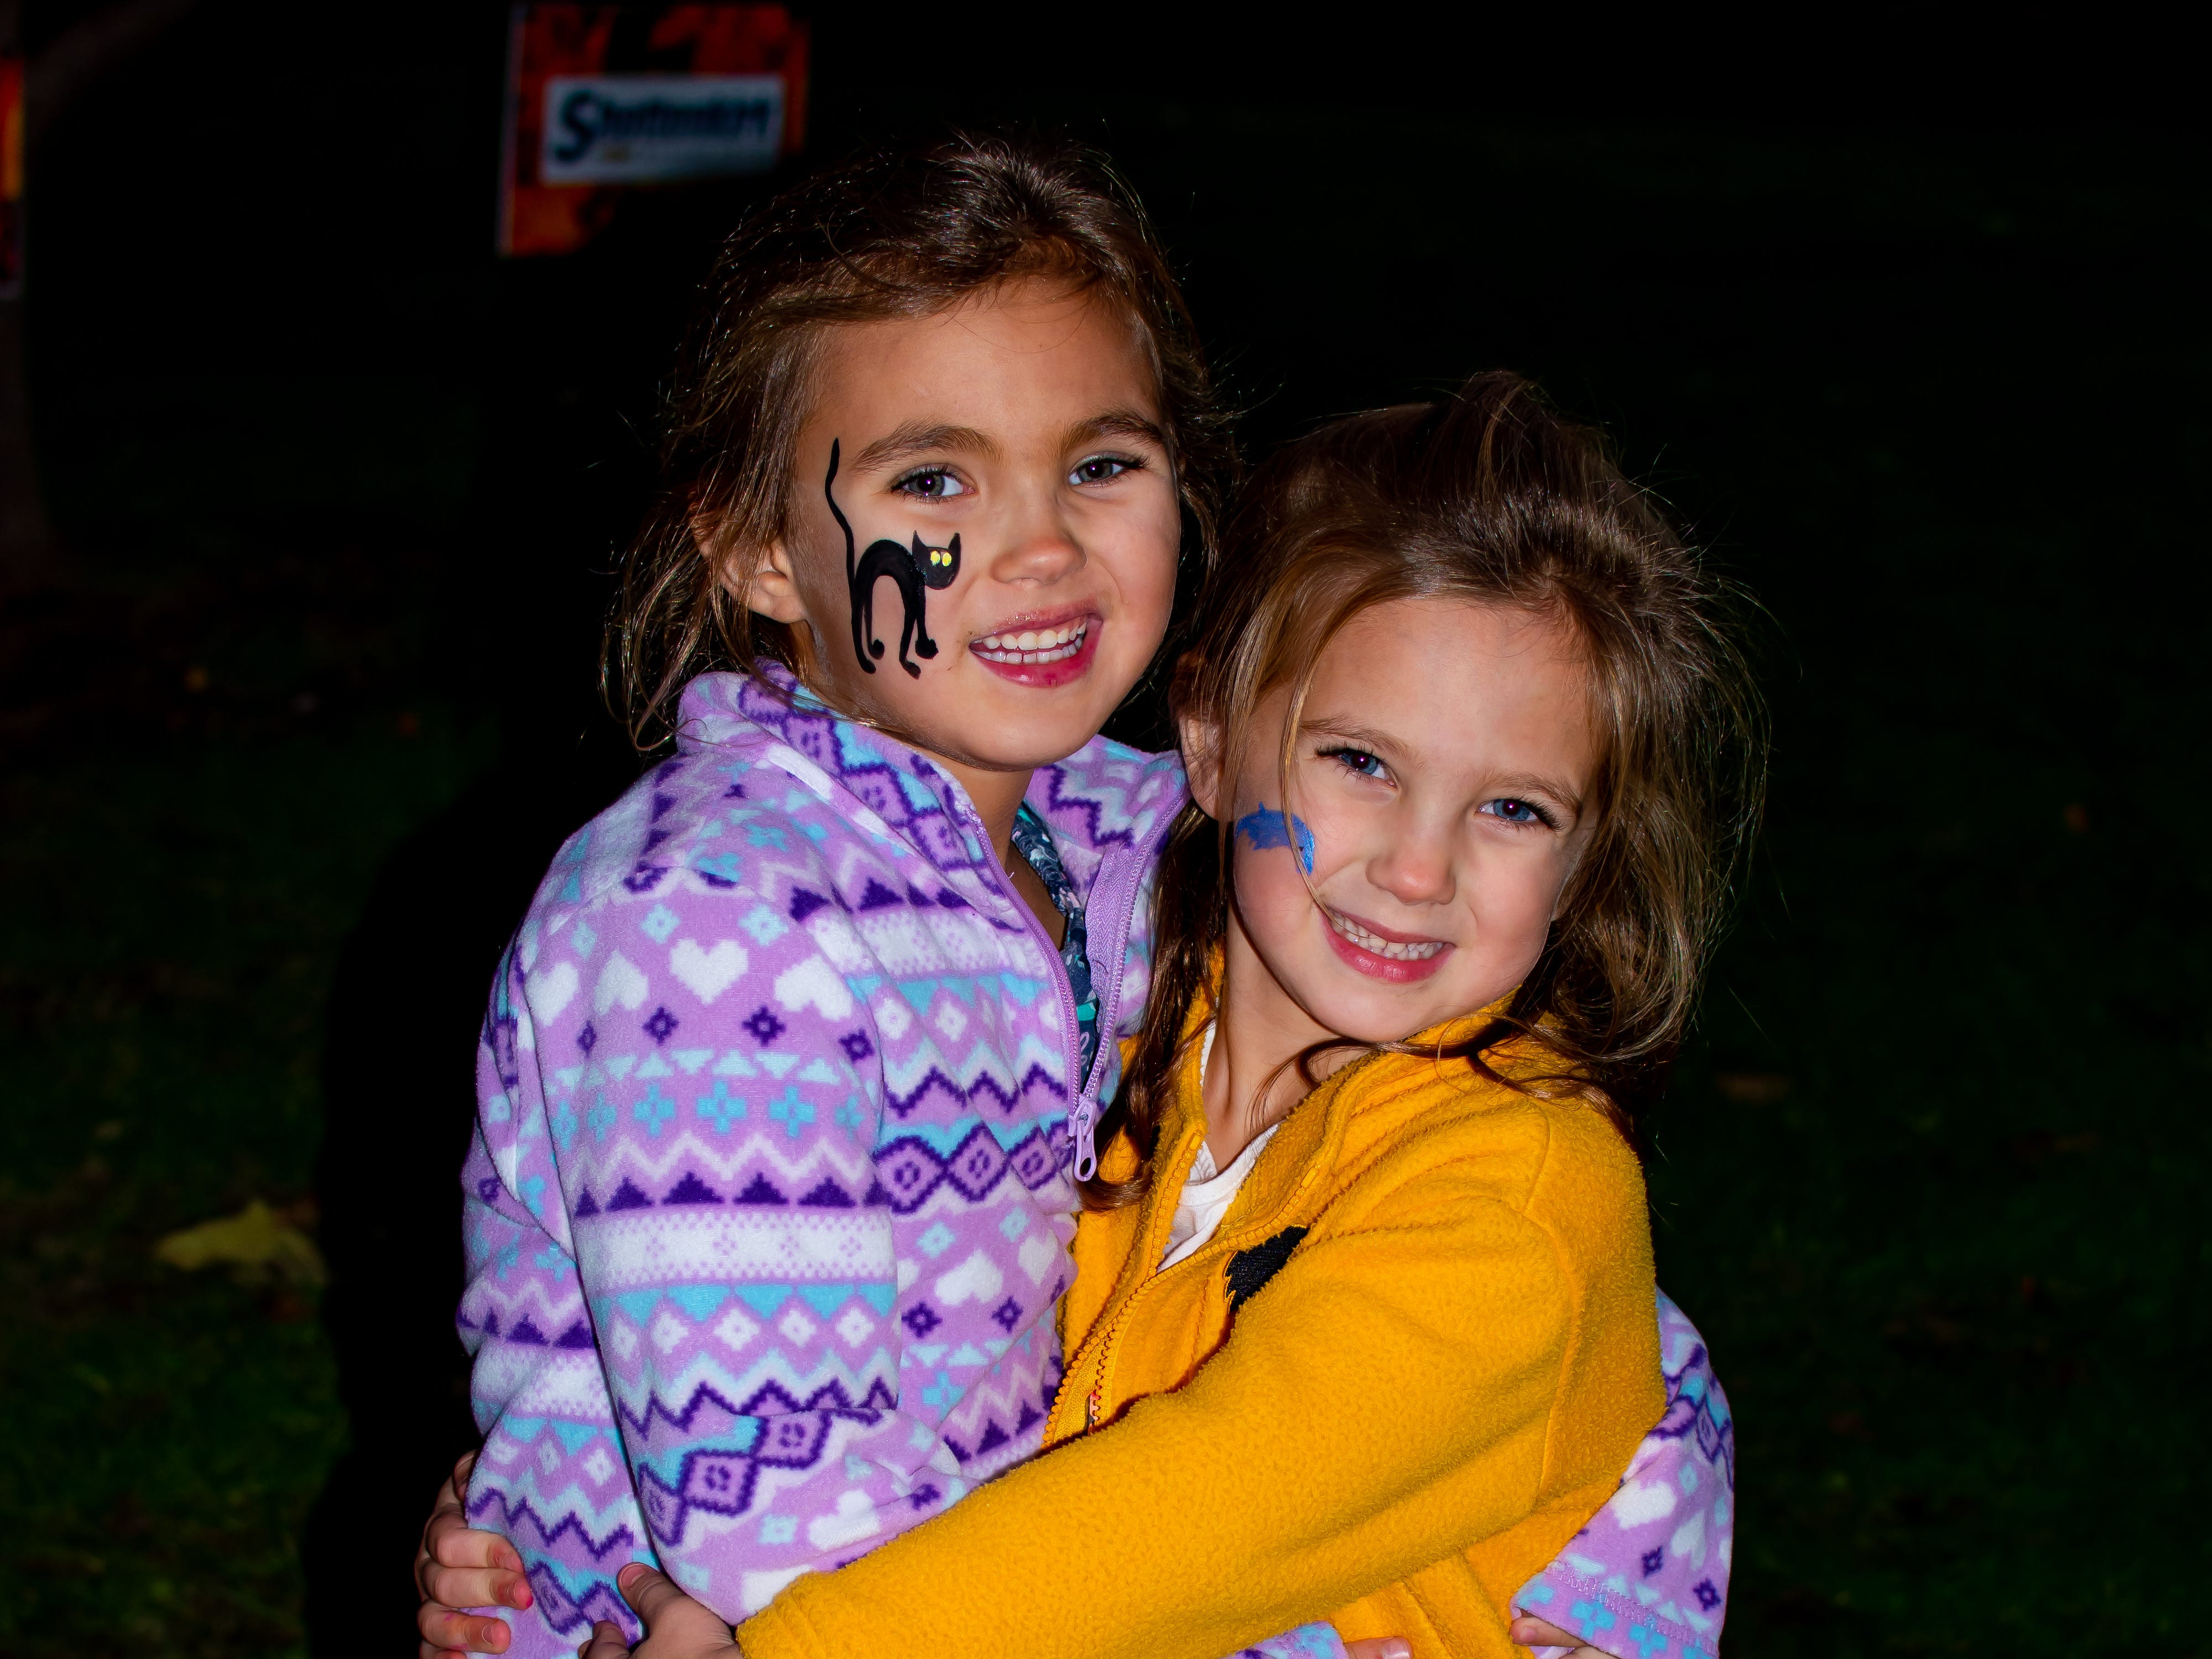 Avery and Beckett, 4 and 2, both of Waukee,  had their faces painted on Tuesday, Oct. 16, 2018 for the Waukee Area Chamber of Commerce fall after hours party at Timberline Campground in Waukee.